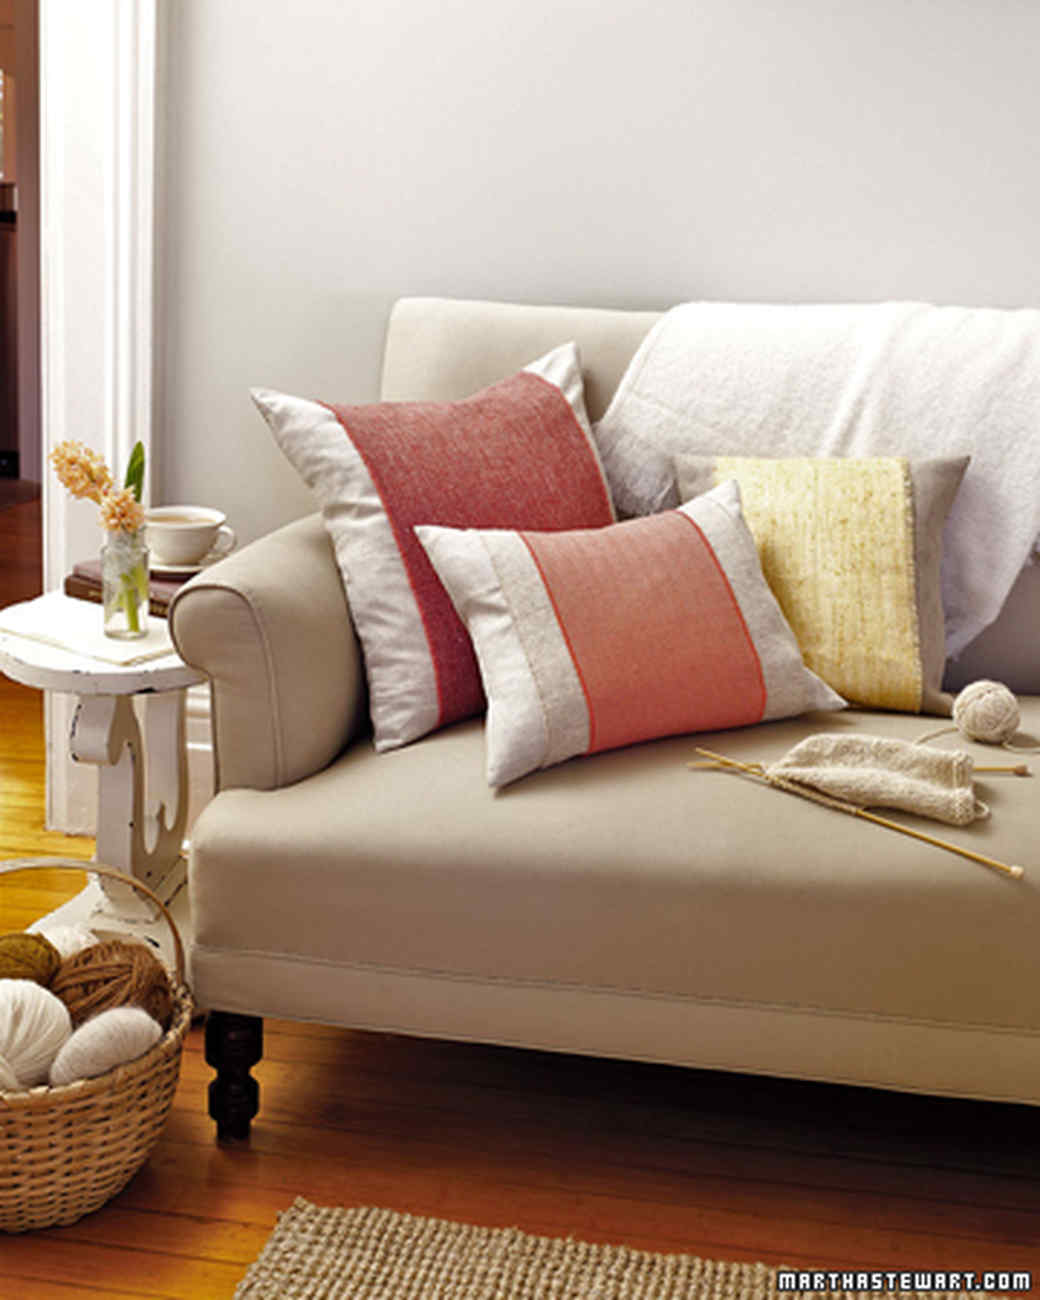 banded pillows